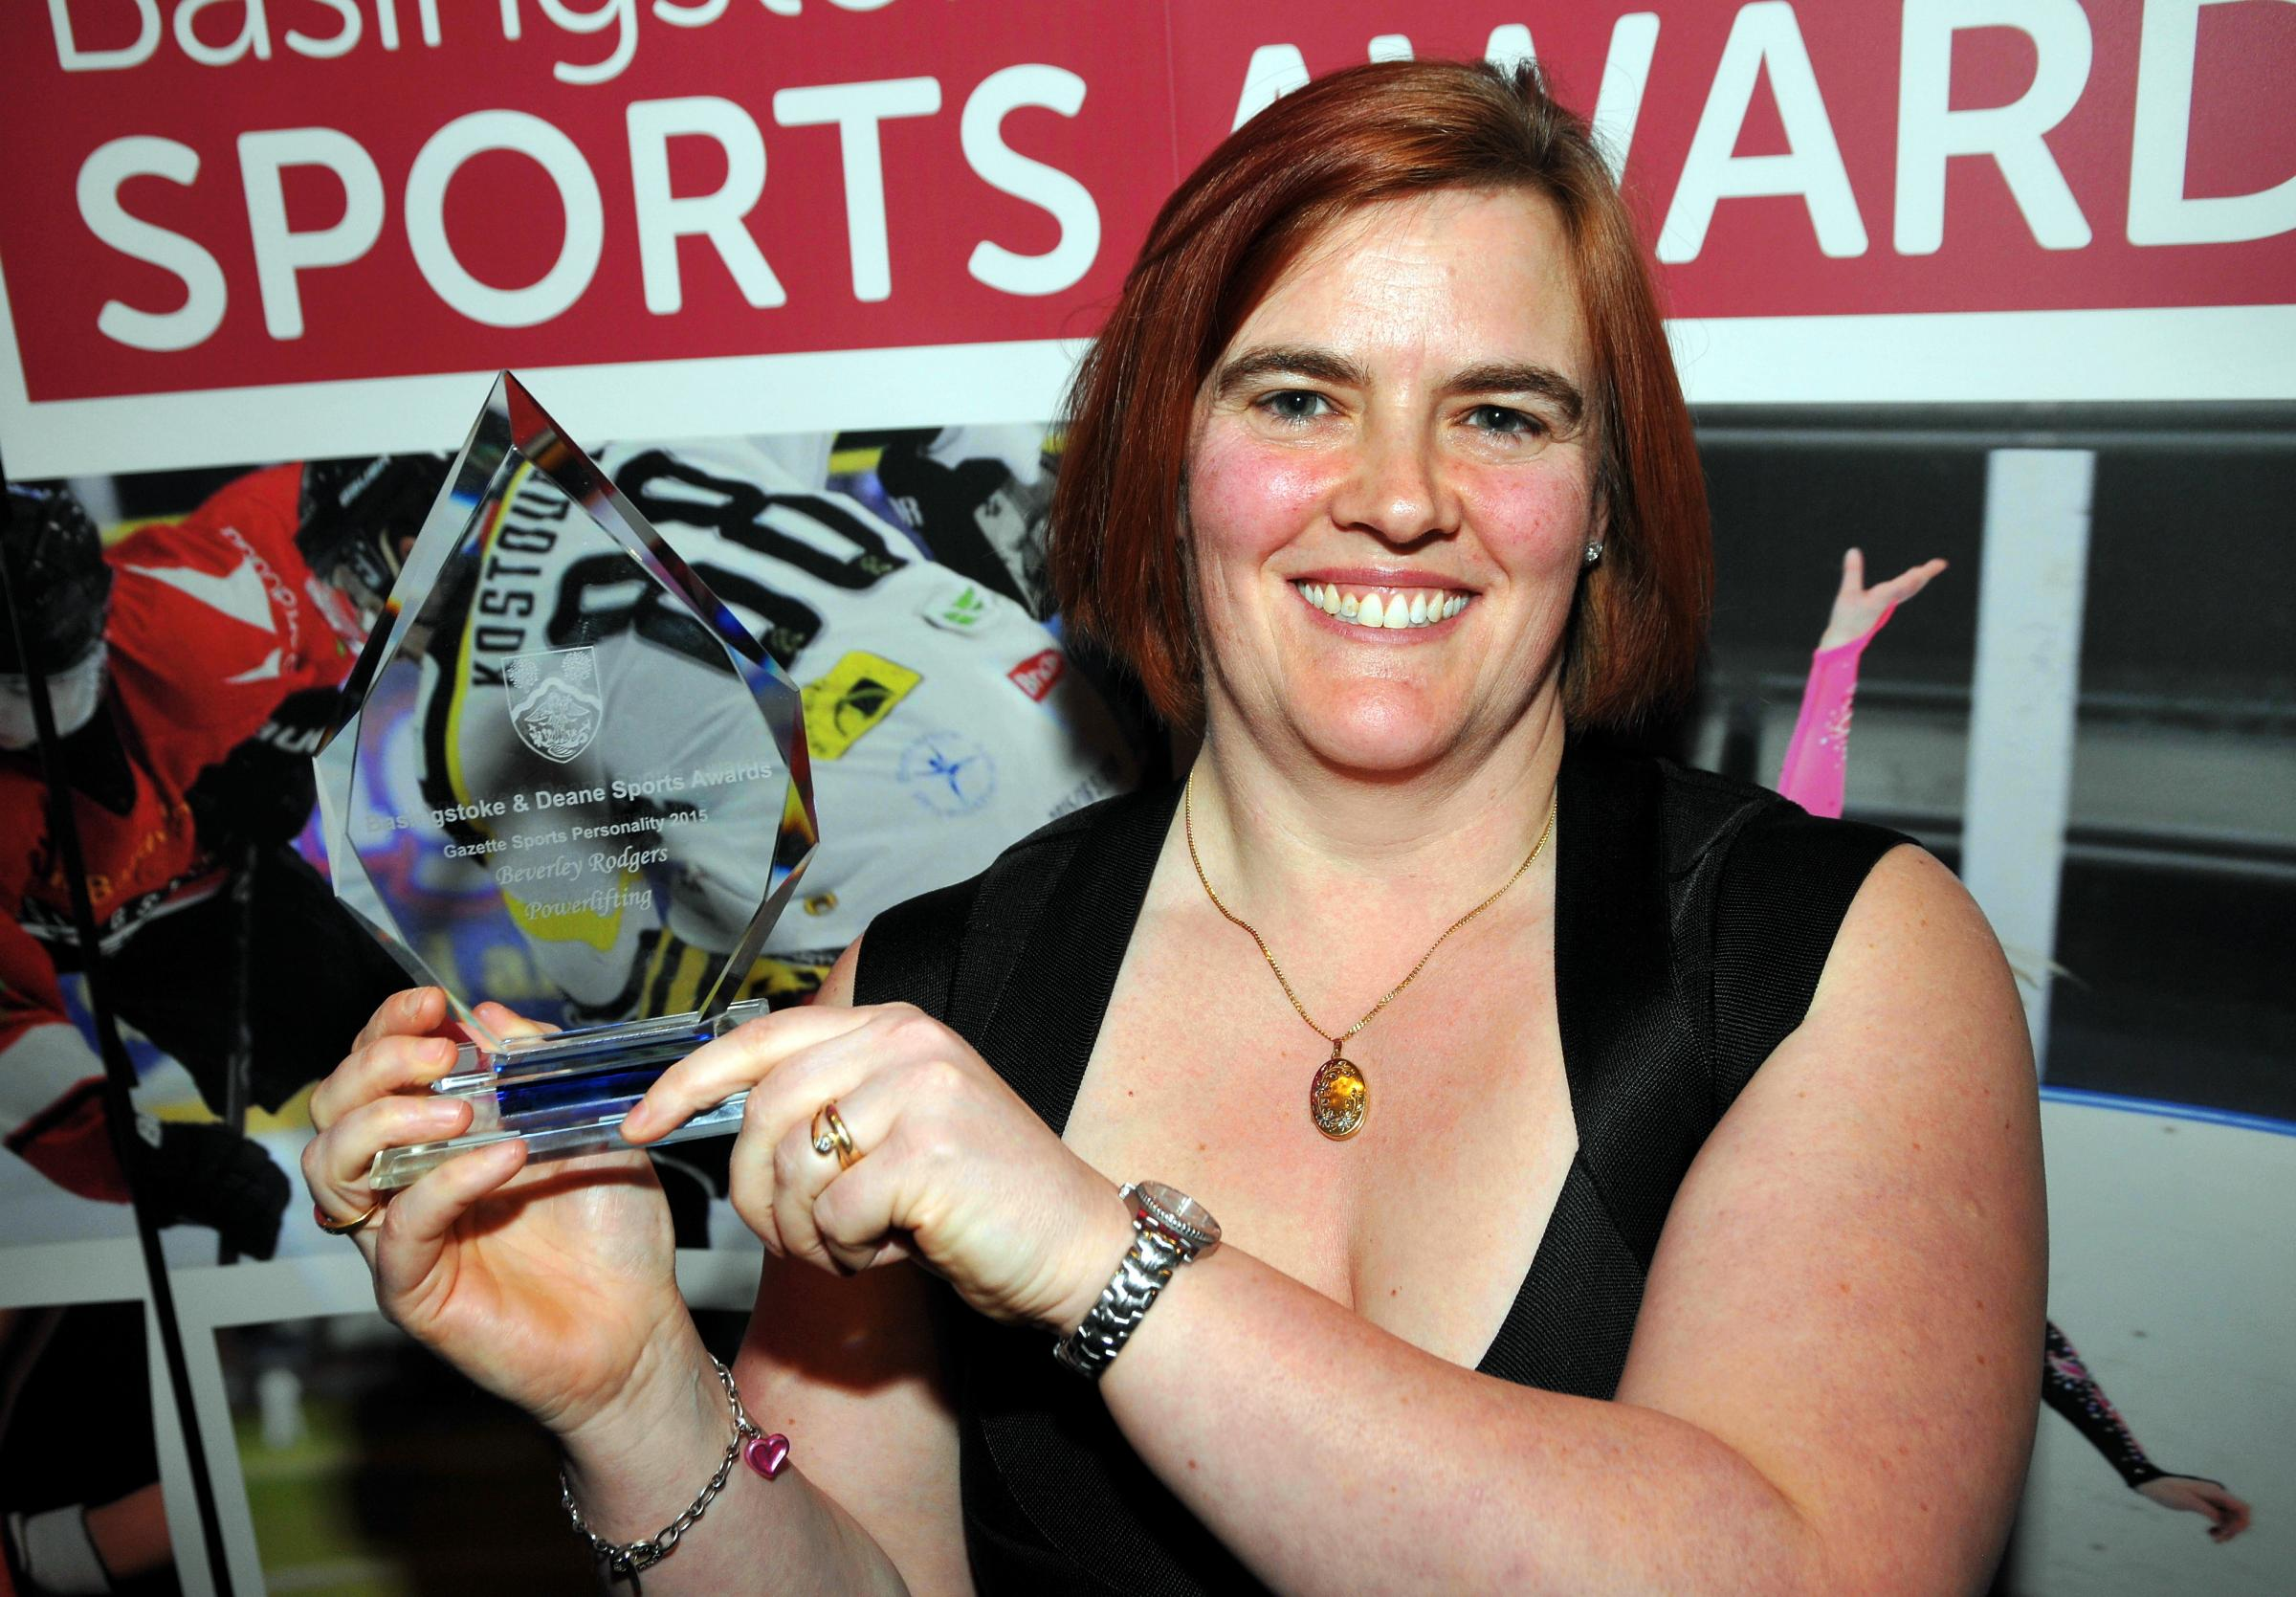 Beverley Rodgers wins the Gazette Sports Personality Award, presented by Gazette Sports Reporter Graham Merry.